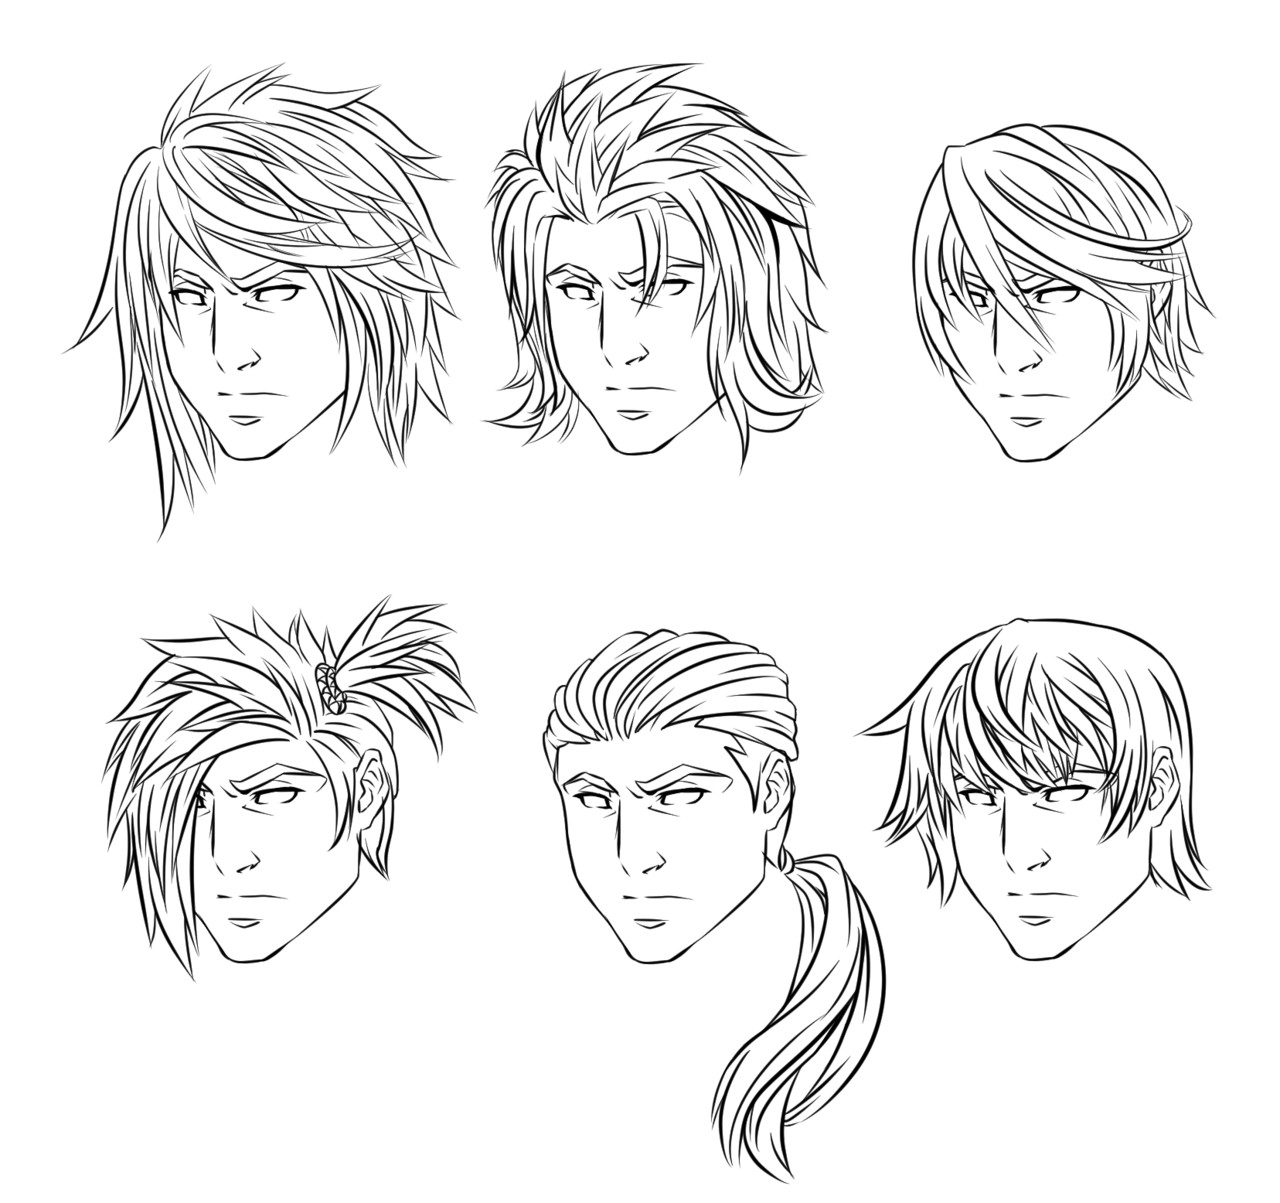 Best ideas about Anime Hairstyle Male . Save or Pin Anime Male Hairstyles by CrimsonCypher on DeviantArt Now.